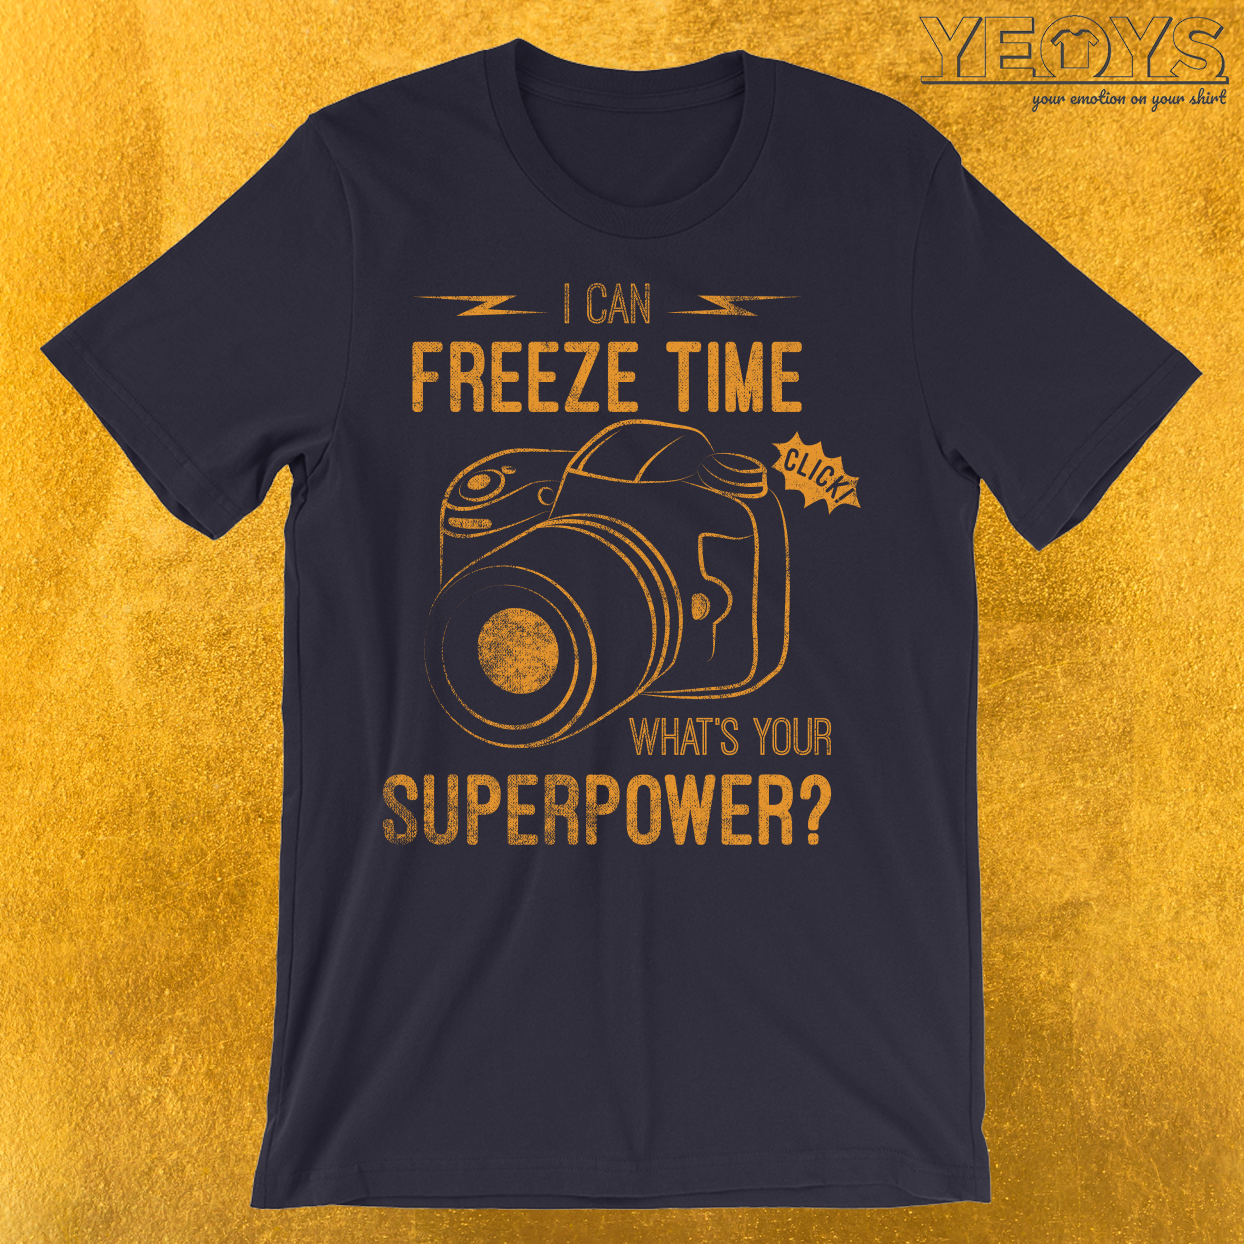 I Can Freeze Time Superpower T-Shirt